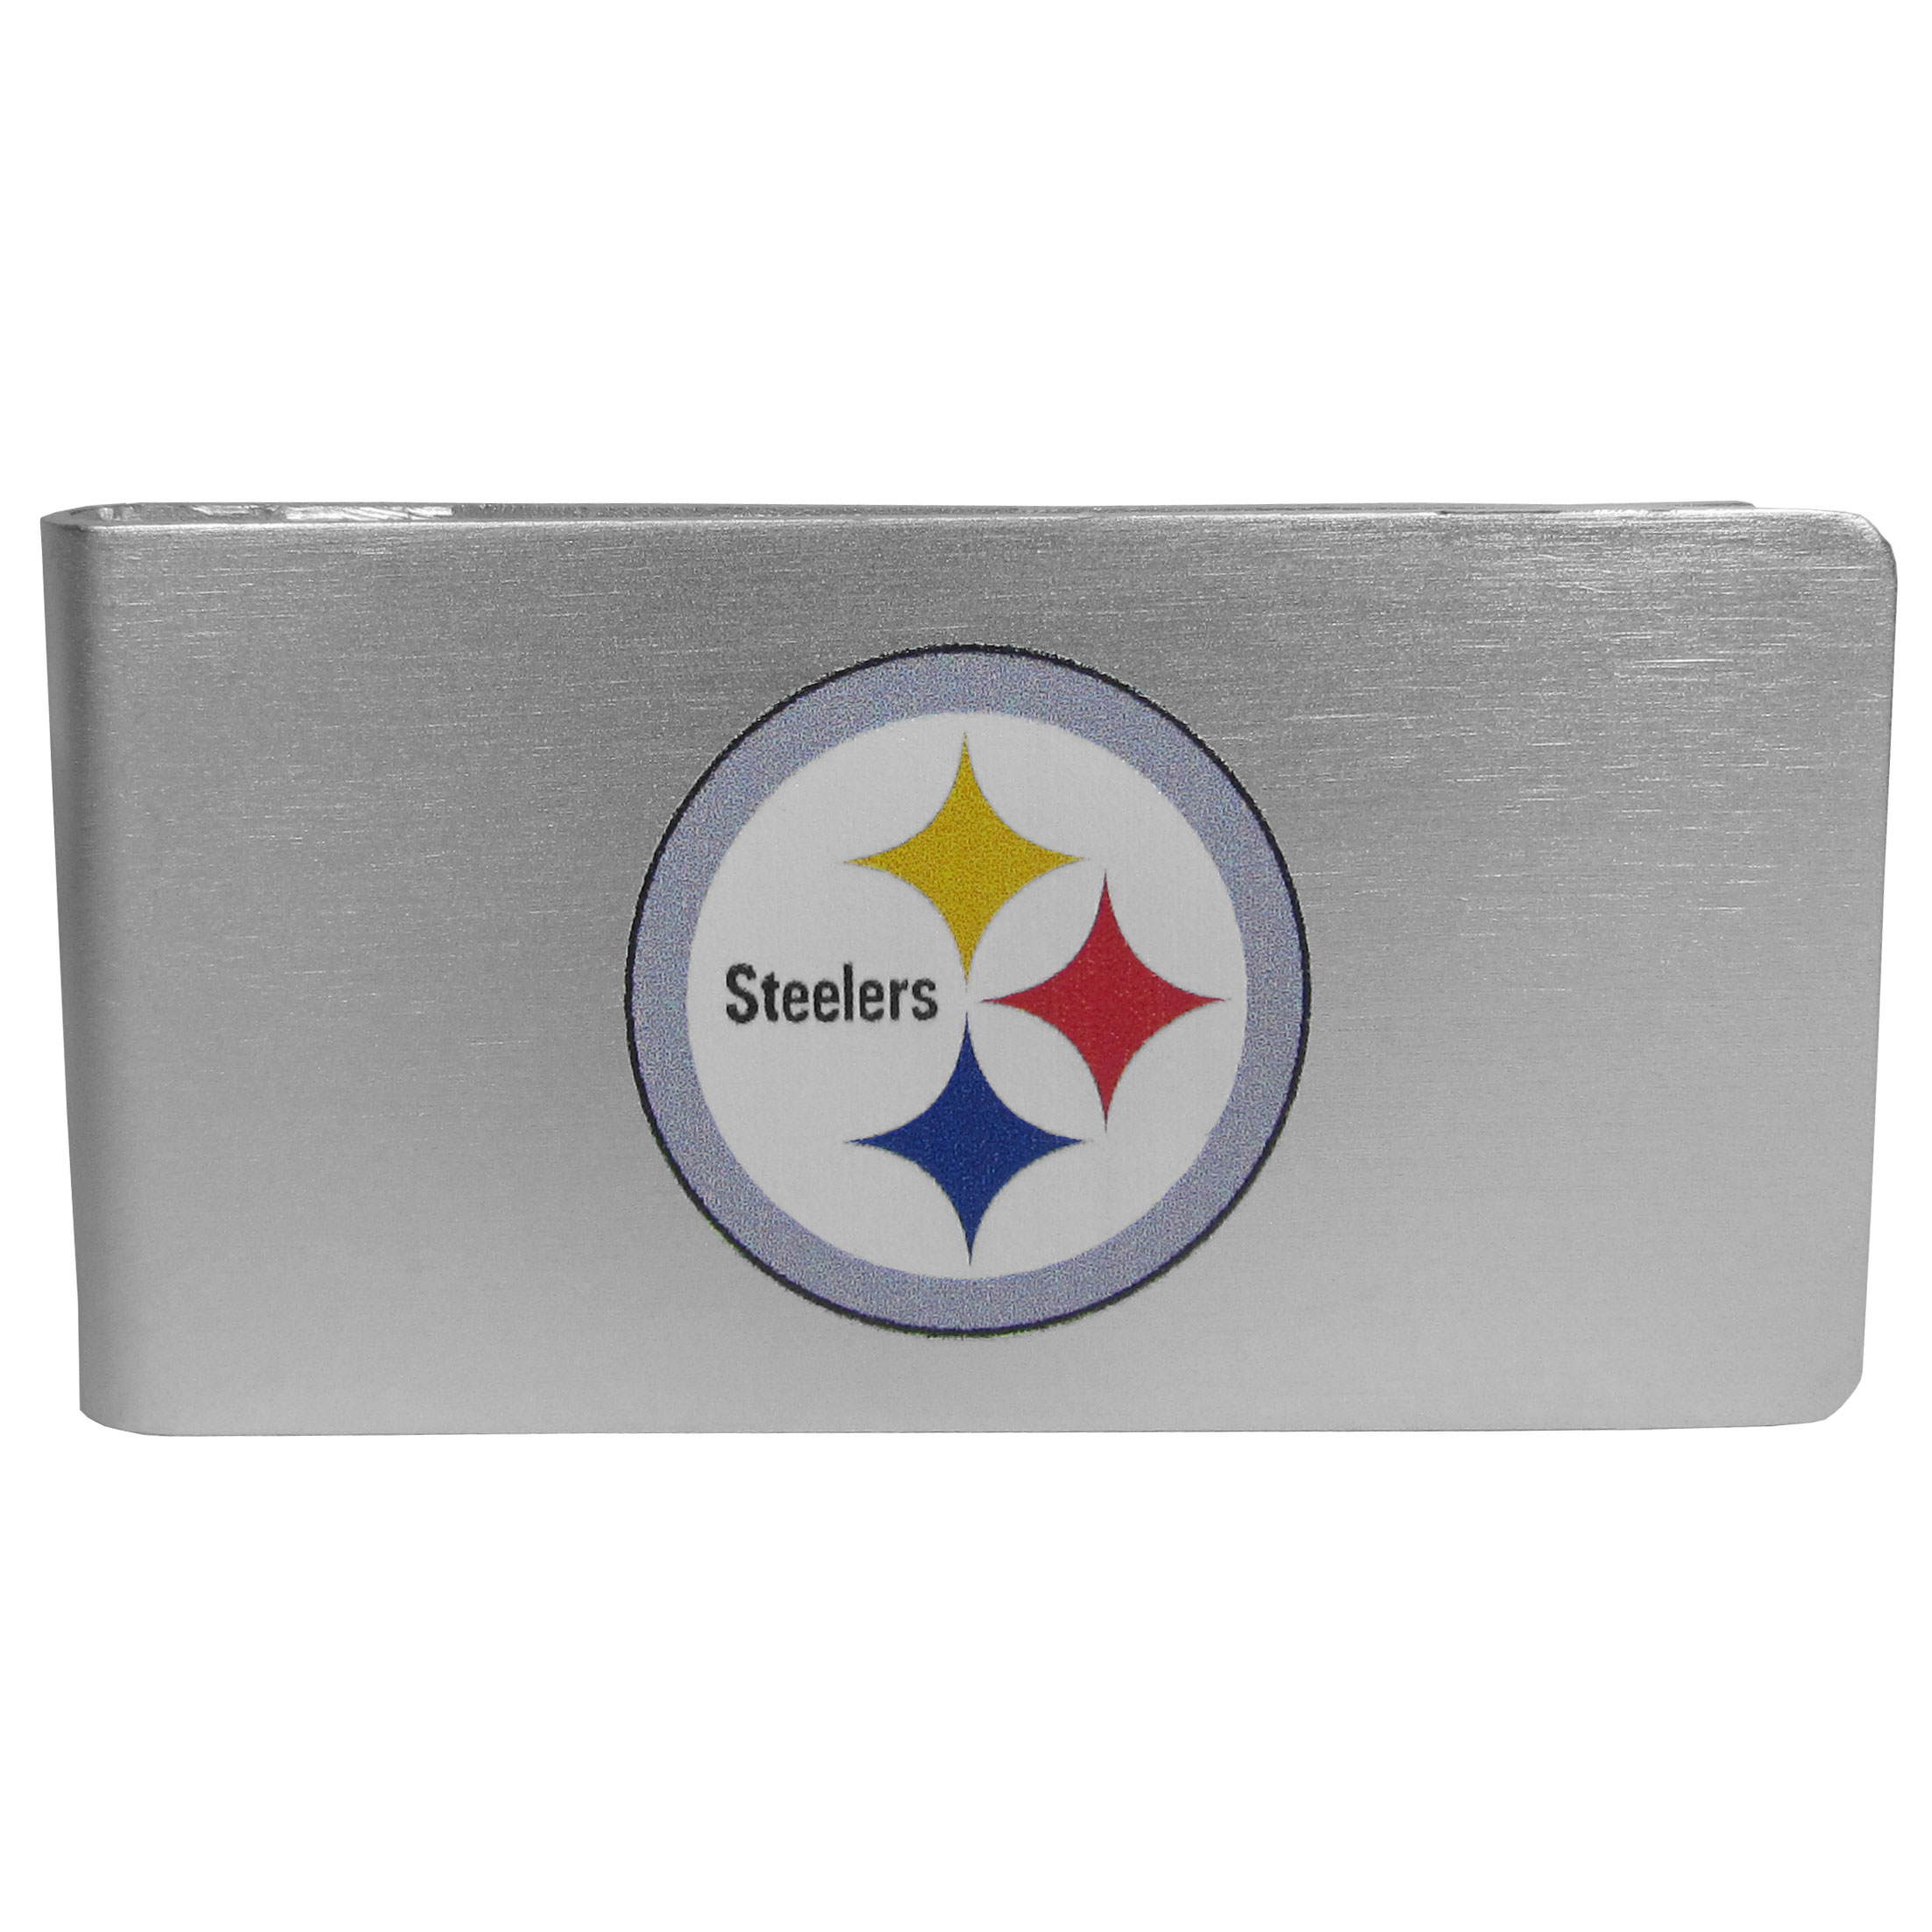 Pittsburgh Steelers Logo Money Clip - Our brushed metal money clip has classic style and functionality. The attractive clip features the Pittsburgh Steelers logo expertly printed on front.